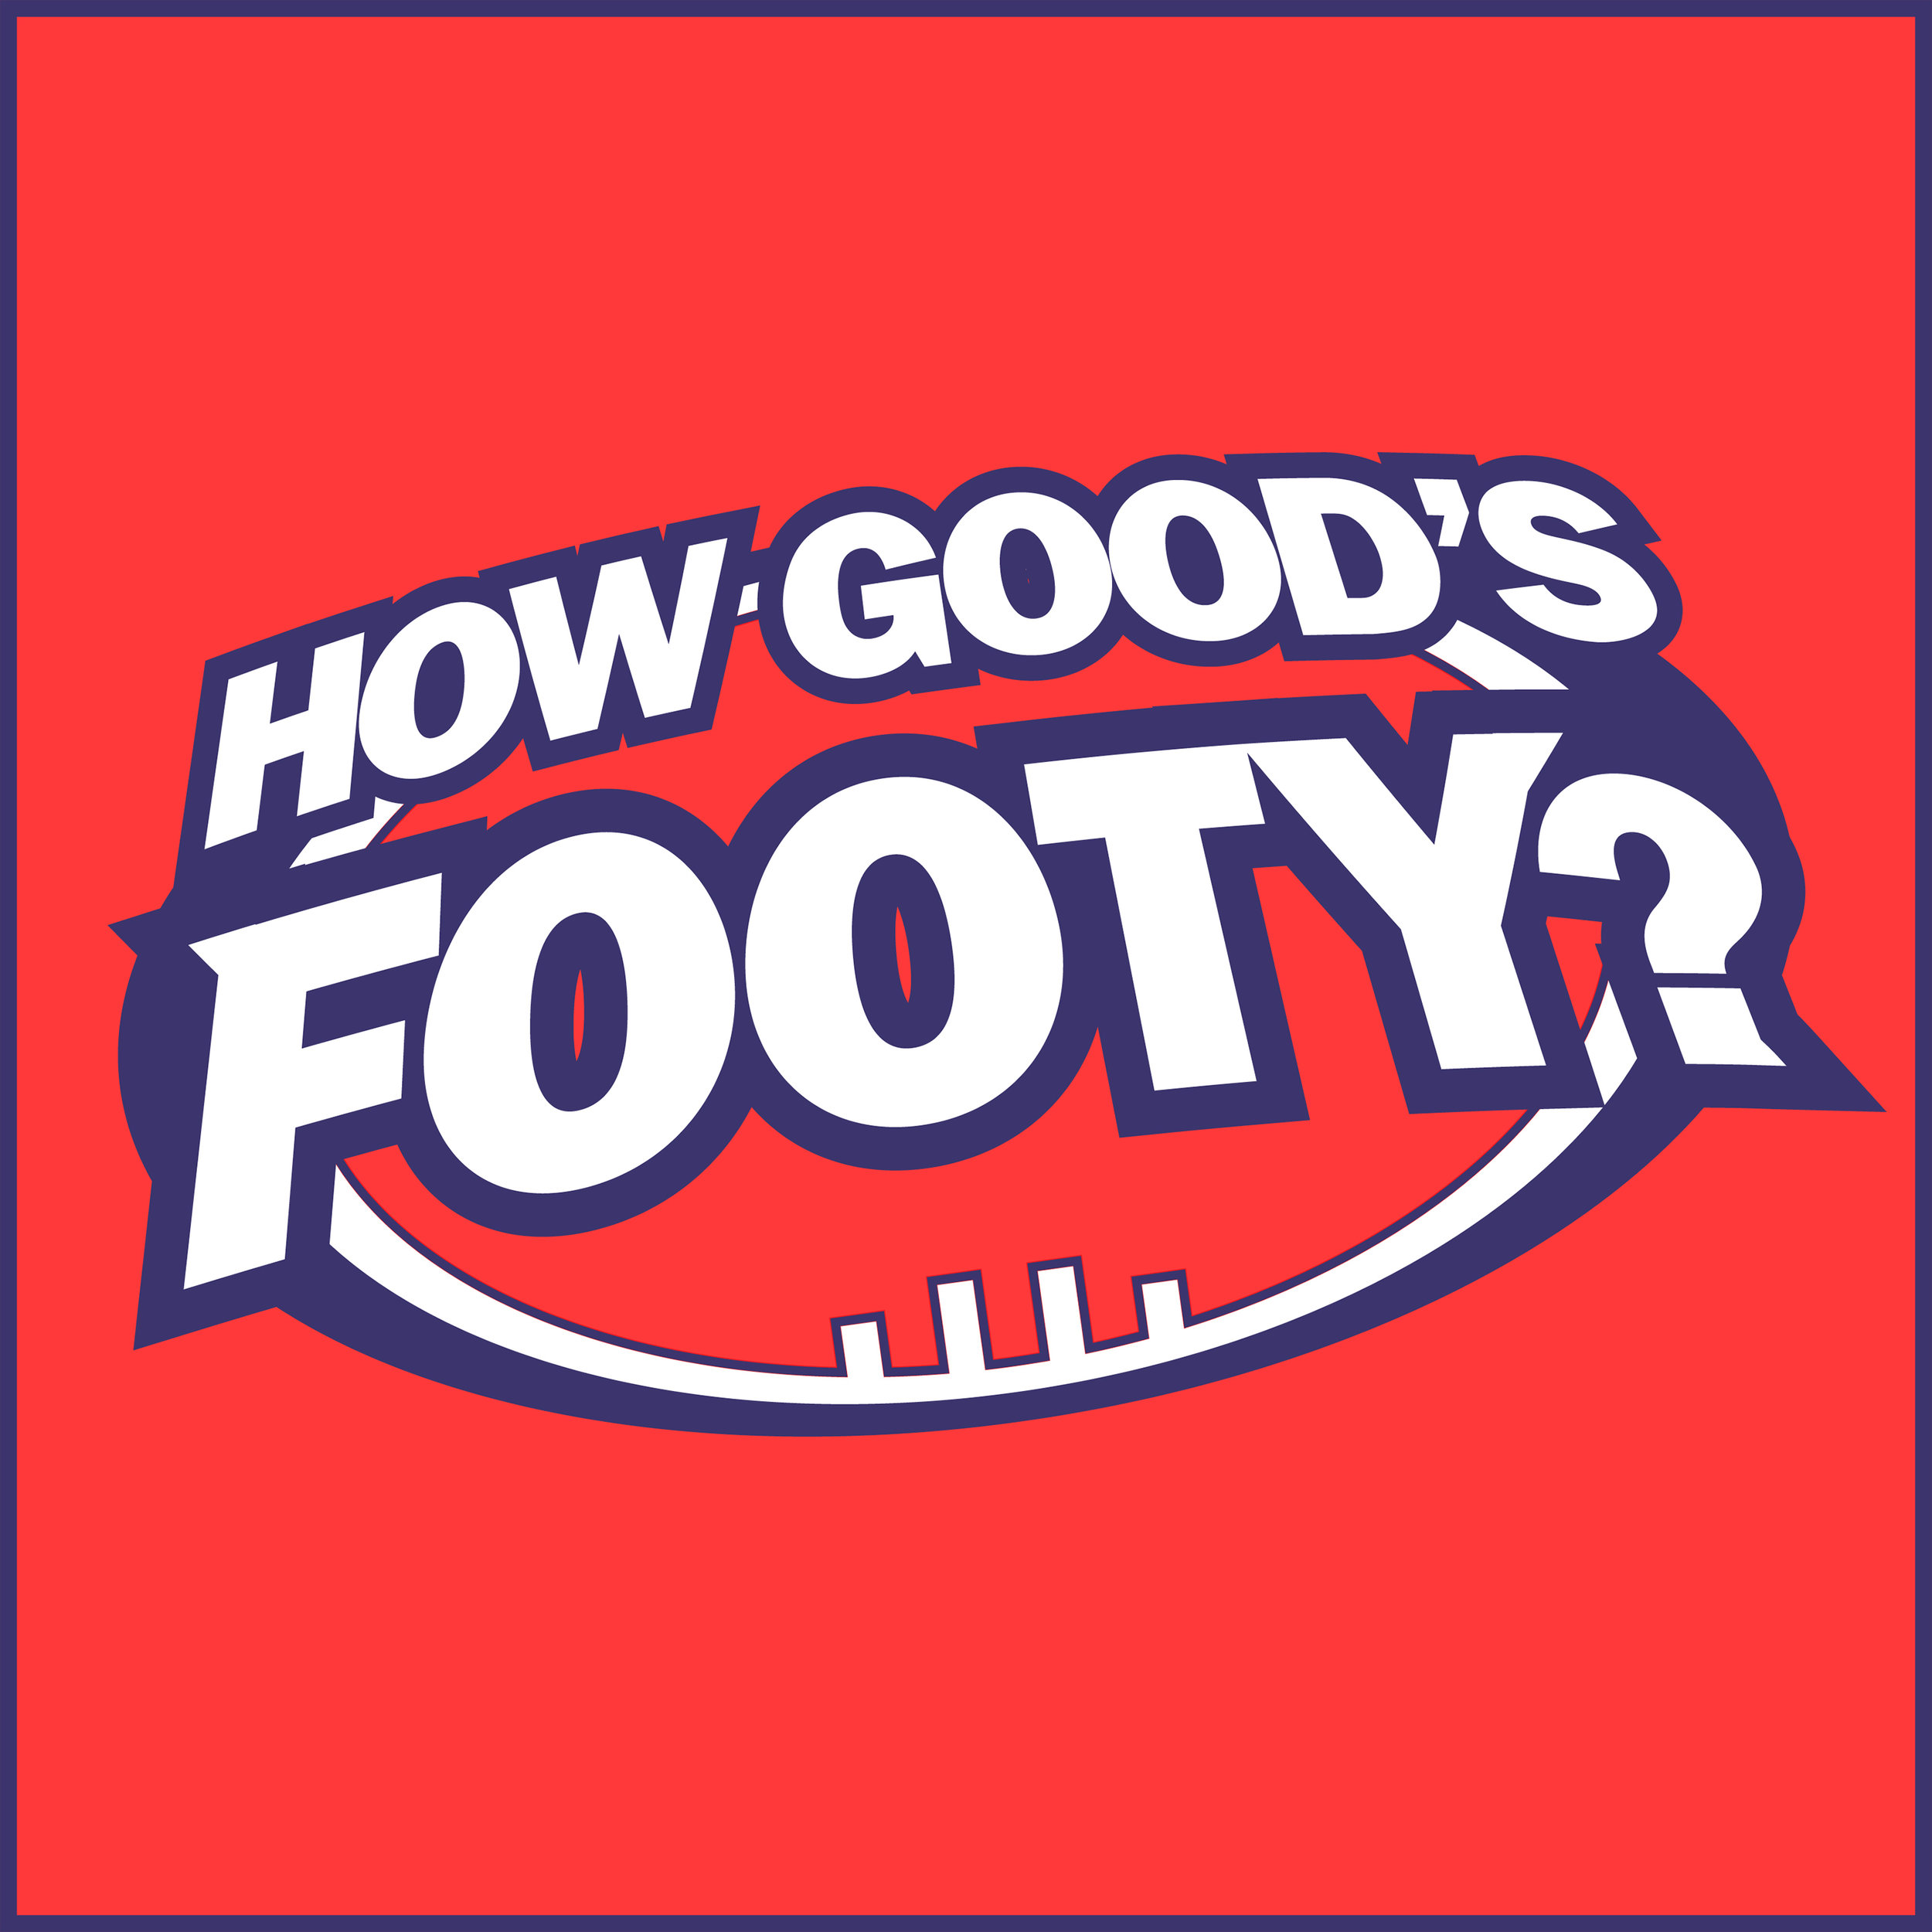 How Good's Footy.jpg